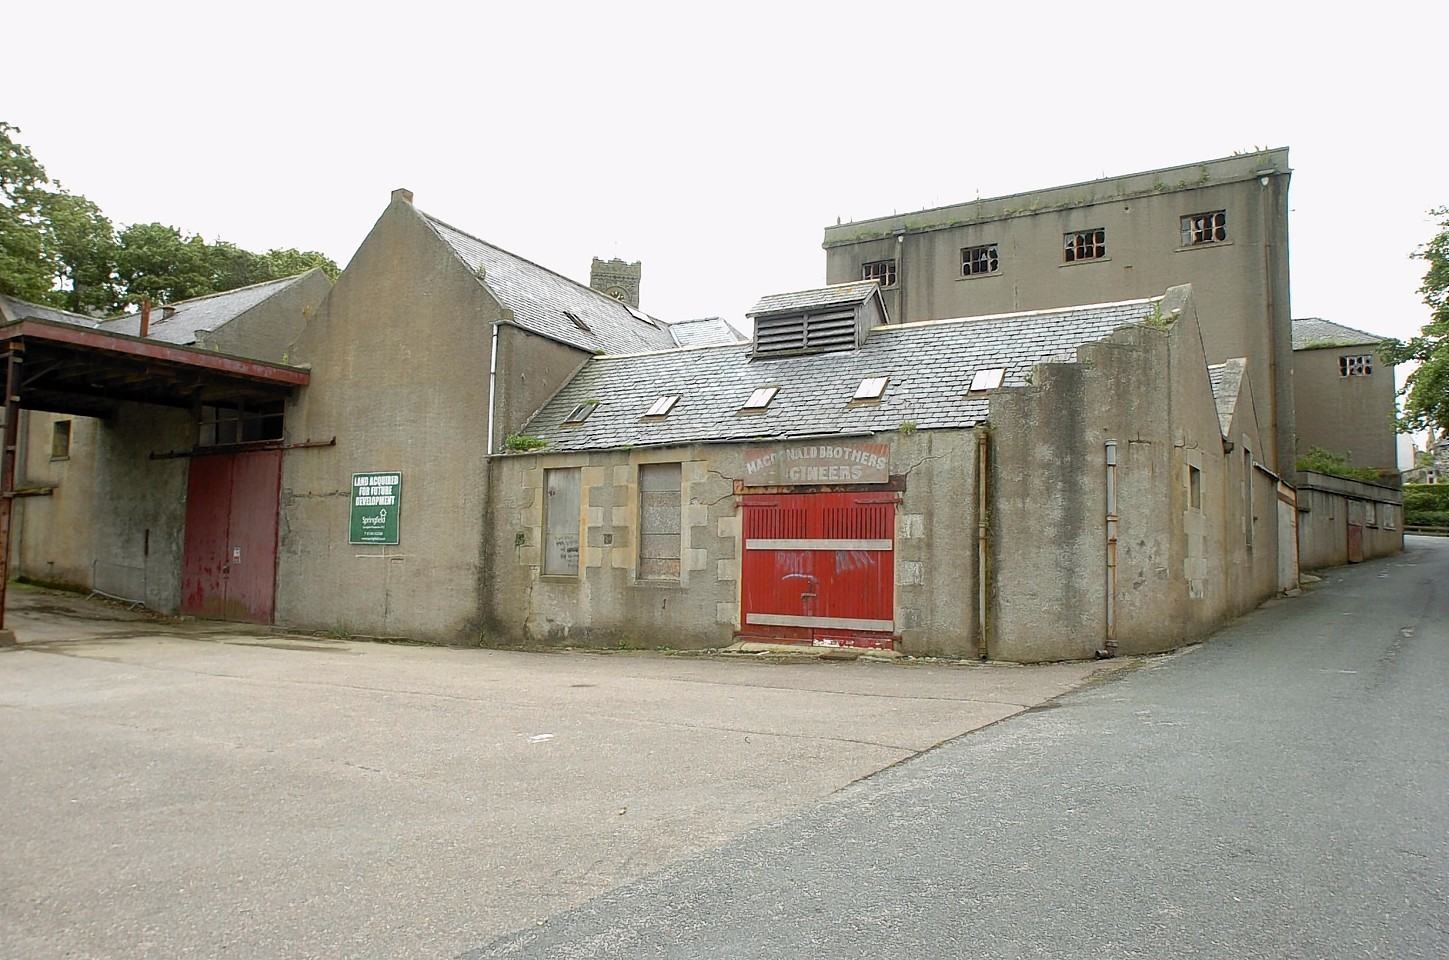 The former mill site at Portsoy.